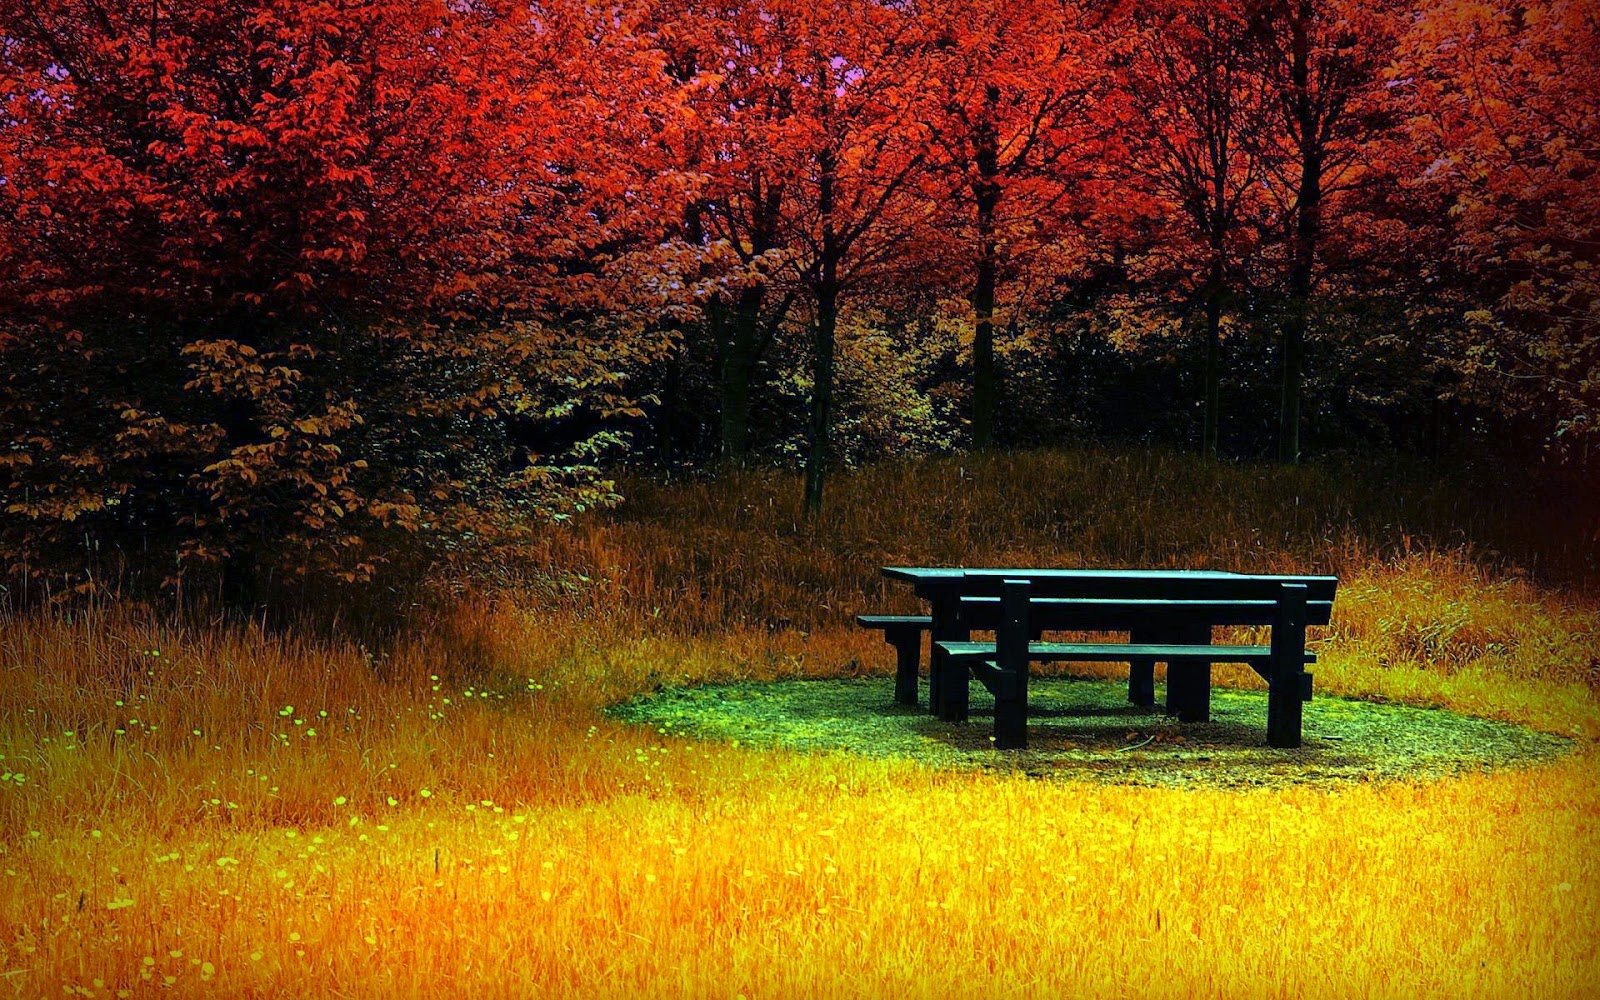 Bench in an autumn forest 1920x1080